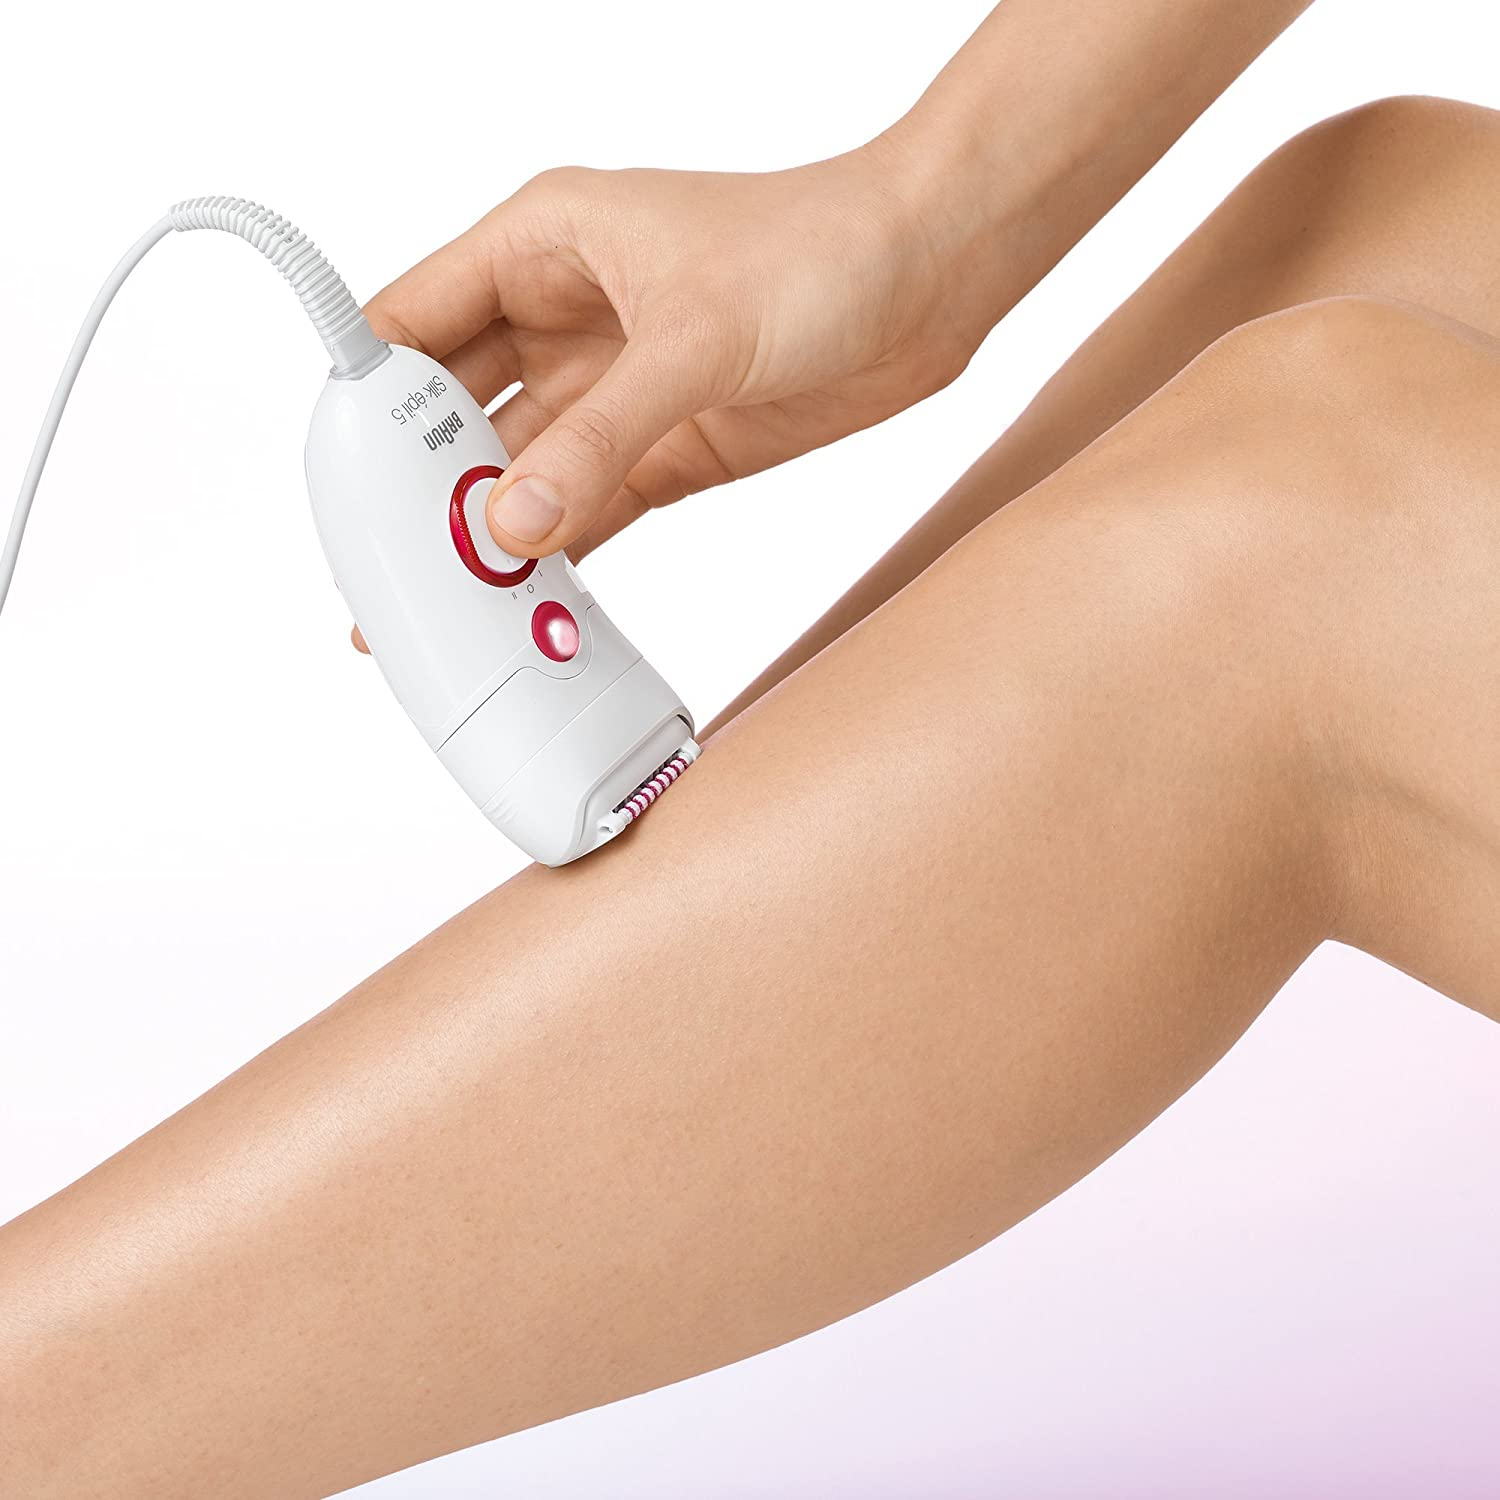 Braun Silk-épil 5 5185 Young Beauty Legs - Depiladora (Epilator) Crimson, Color blanco: Amazon.es: Salud y cuidado personal